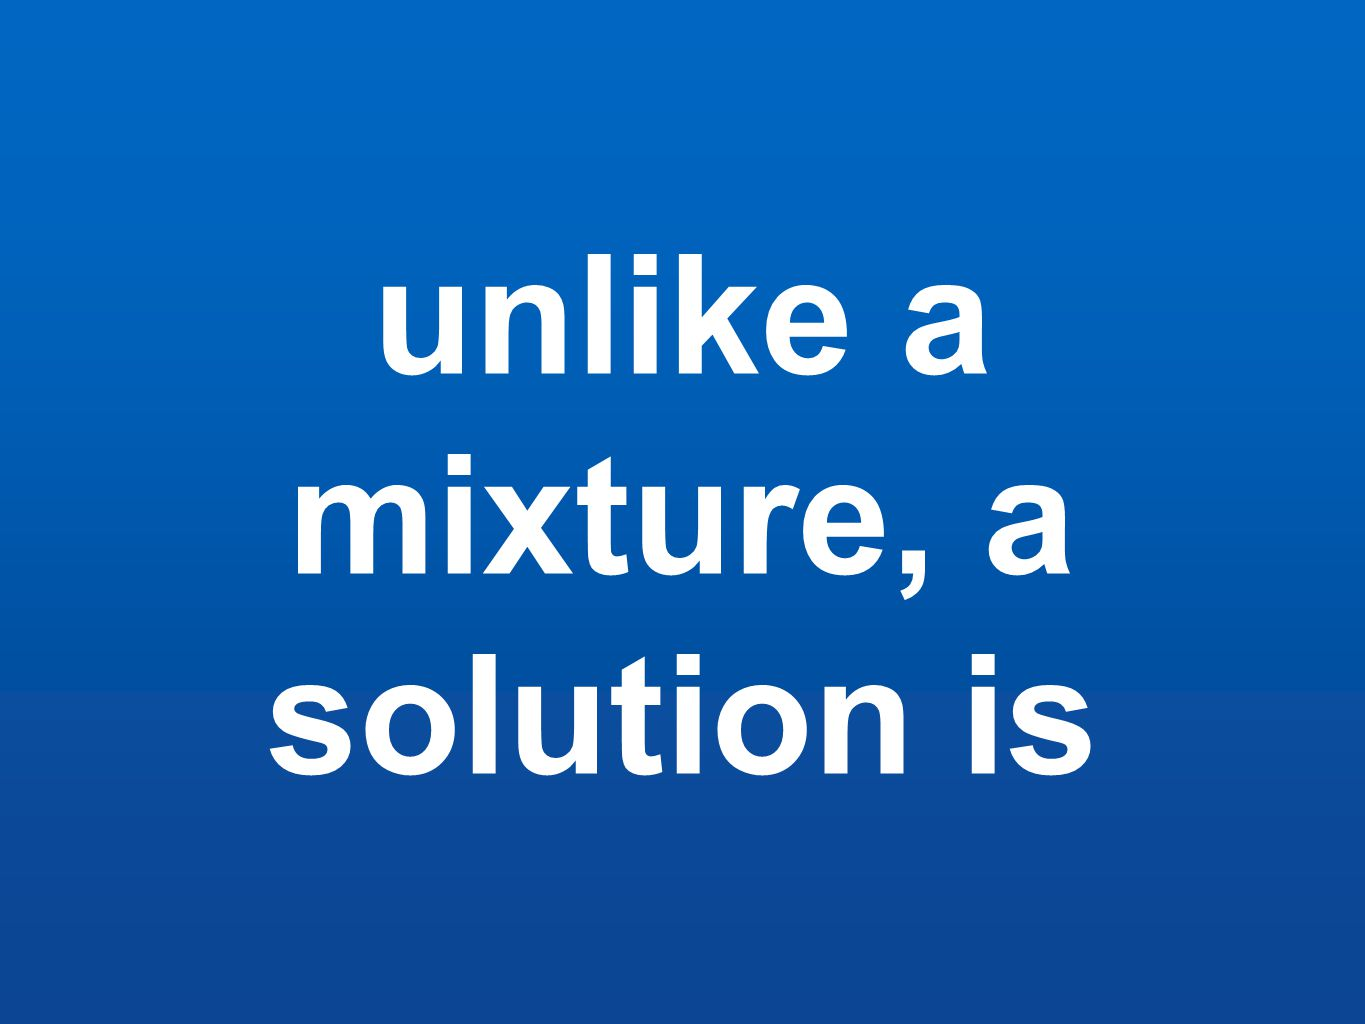 unlike a mixture, a solution is